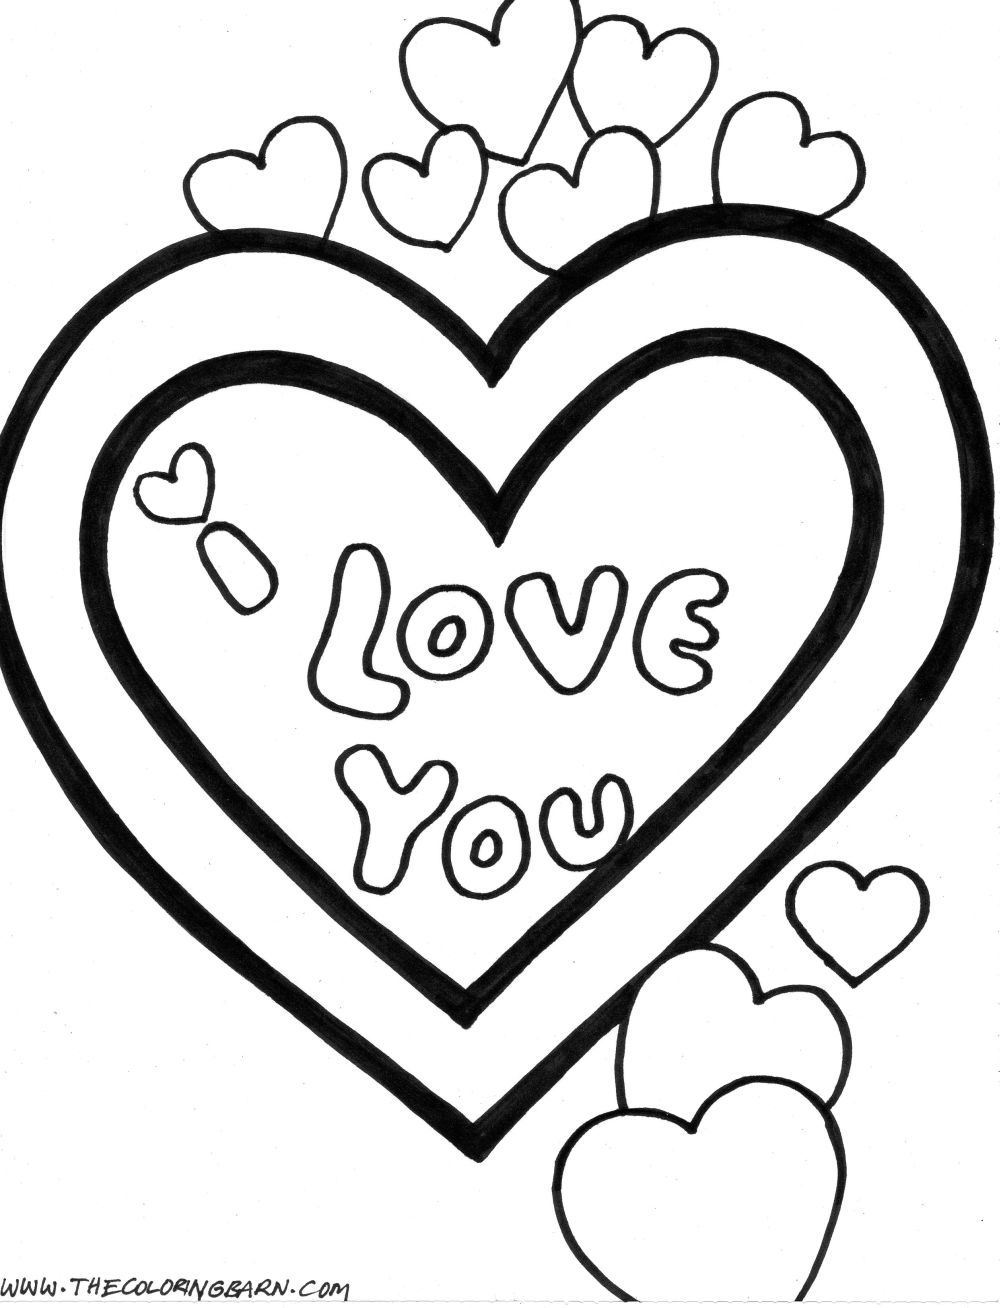 childcoloringpage.com  Valentine coloring pages, Heart coloring